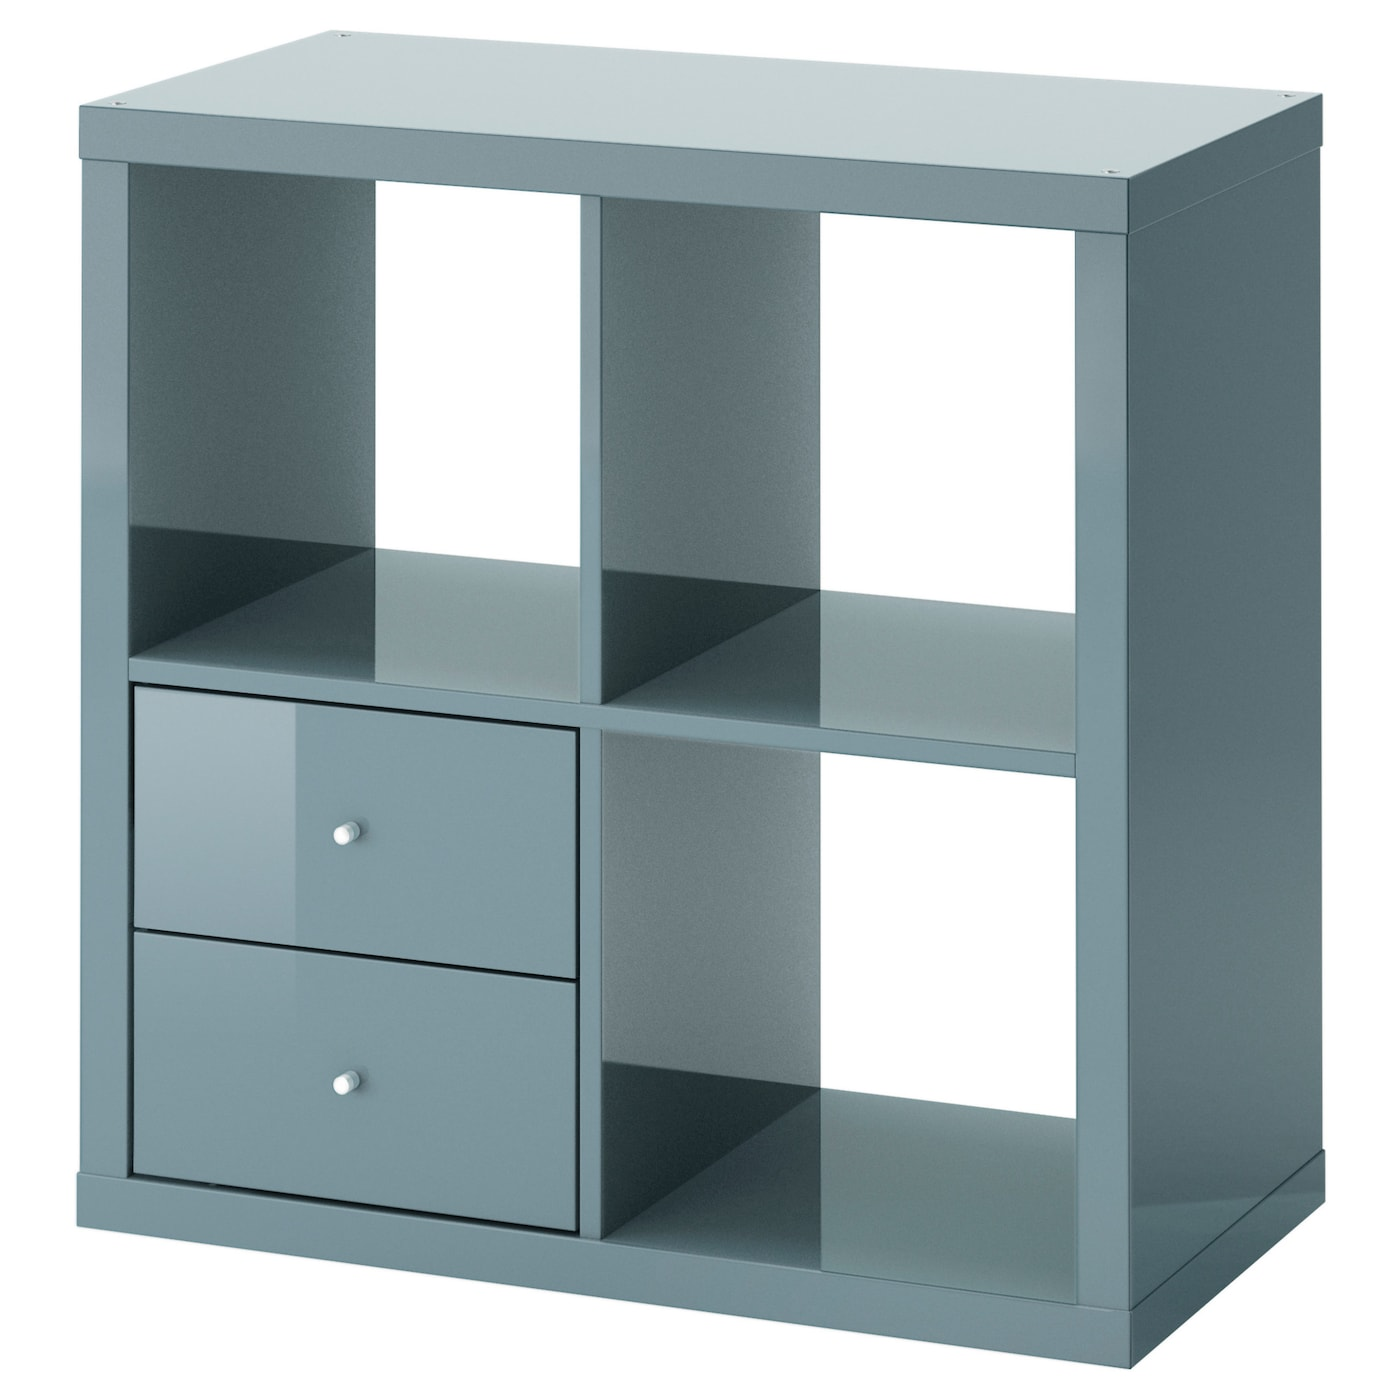 Kallax shelving unit with drawers high gloss grey turquoise 77x77 cm ikea - Etagere murale cube ikea ...